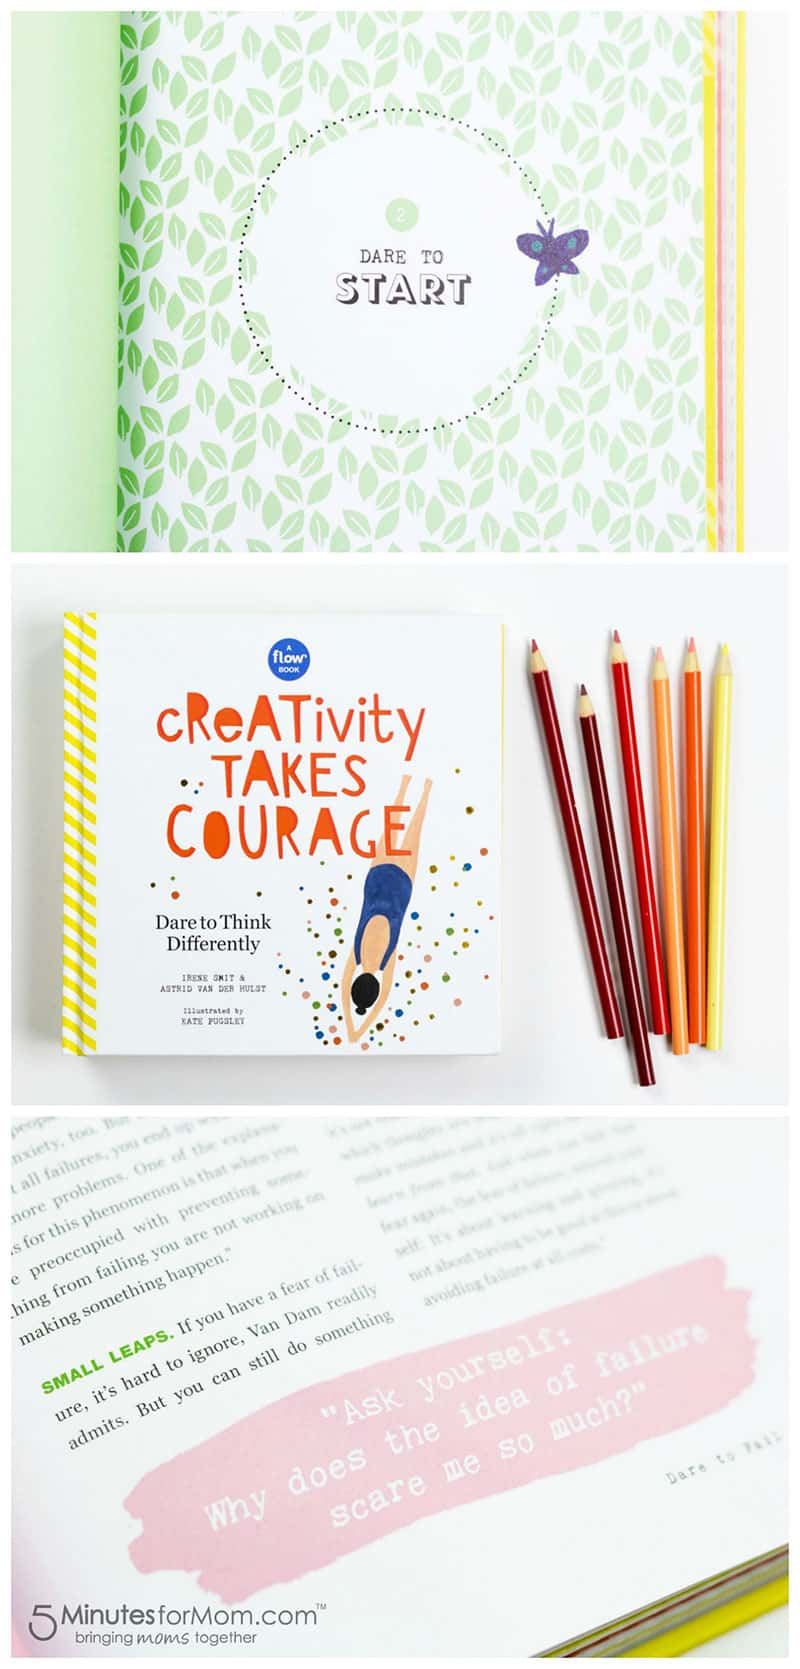 Creativity Takes Courage - book review